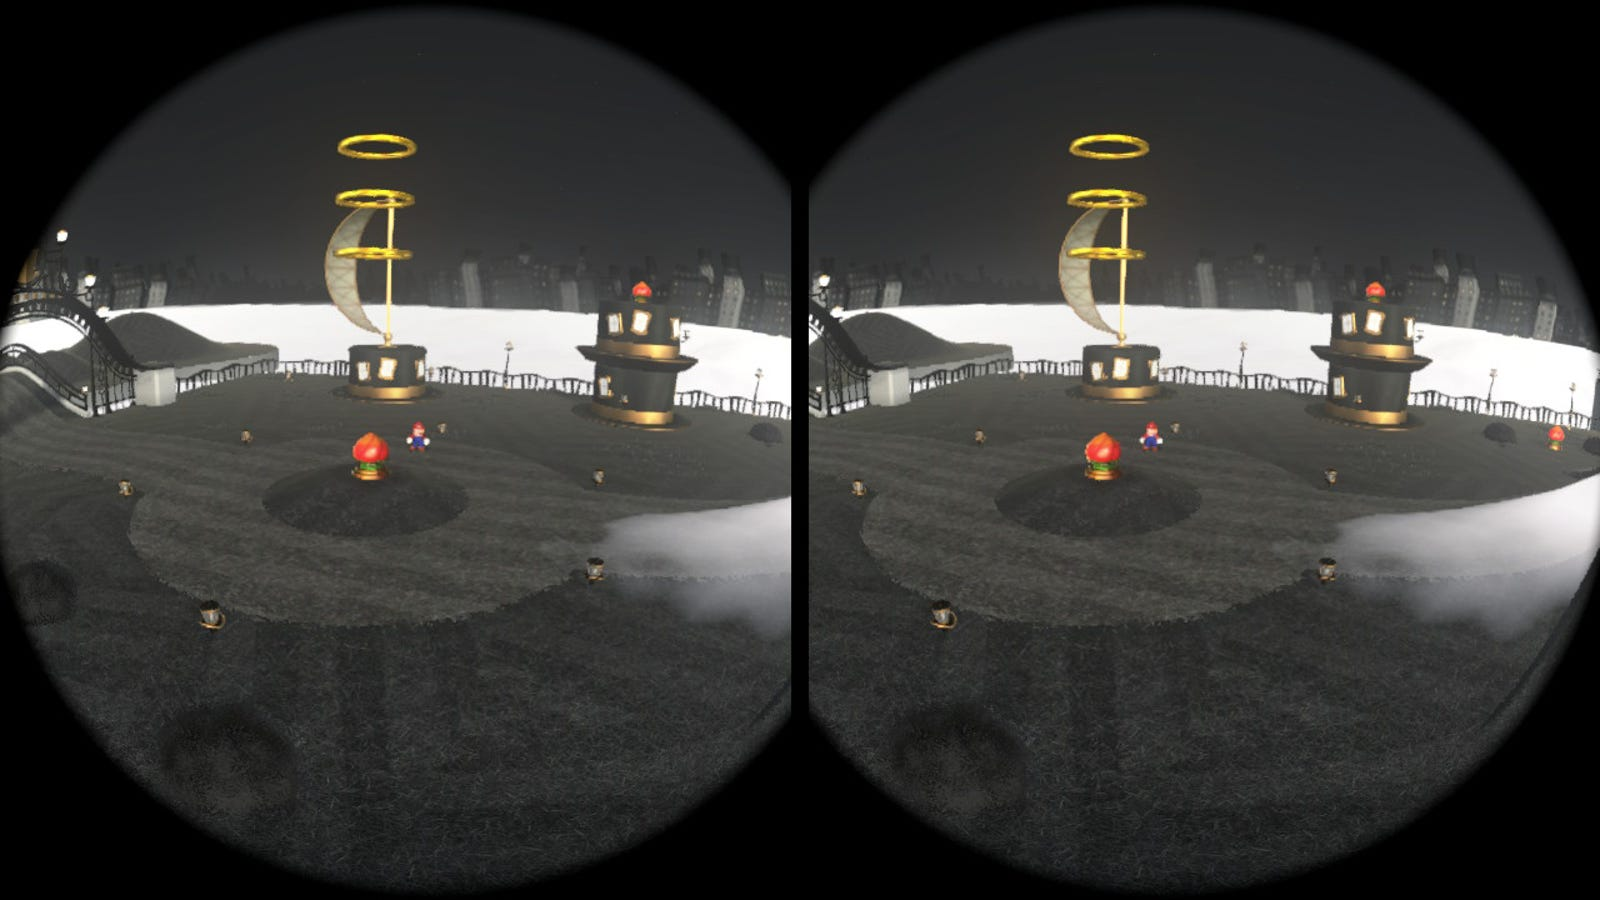 Super Mario Odyssey takes a different approach to VR, placing you in the middle of a floating island with Mario free to roam.